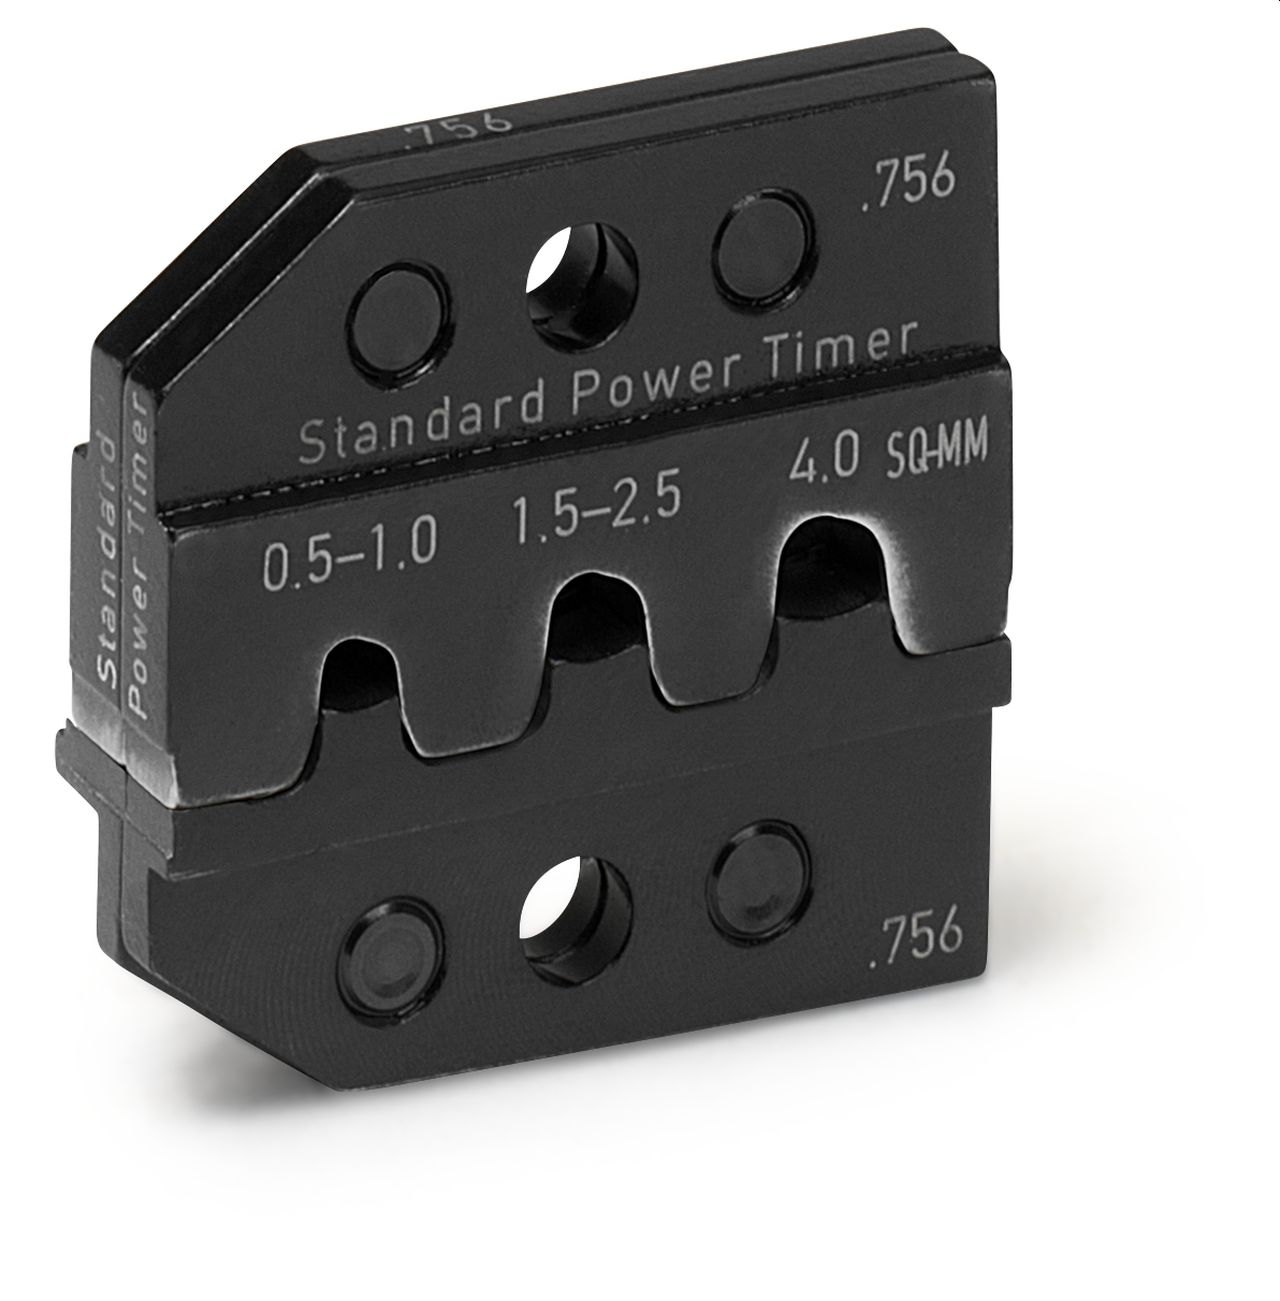 CRIMP DIE SET for Standard Power Timer, 0.5 - 4.0 SQ-MM